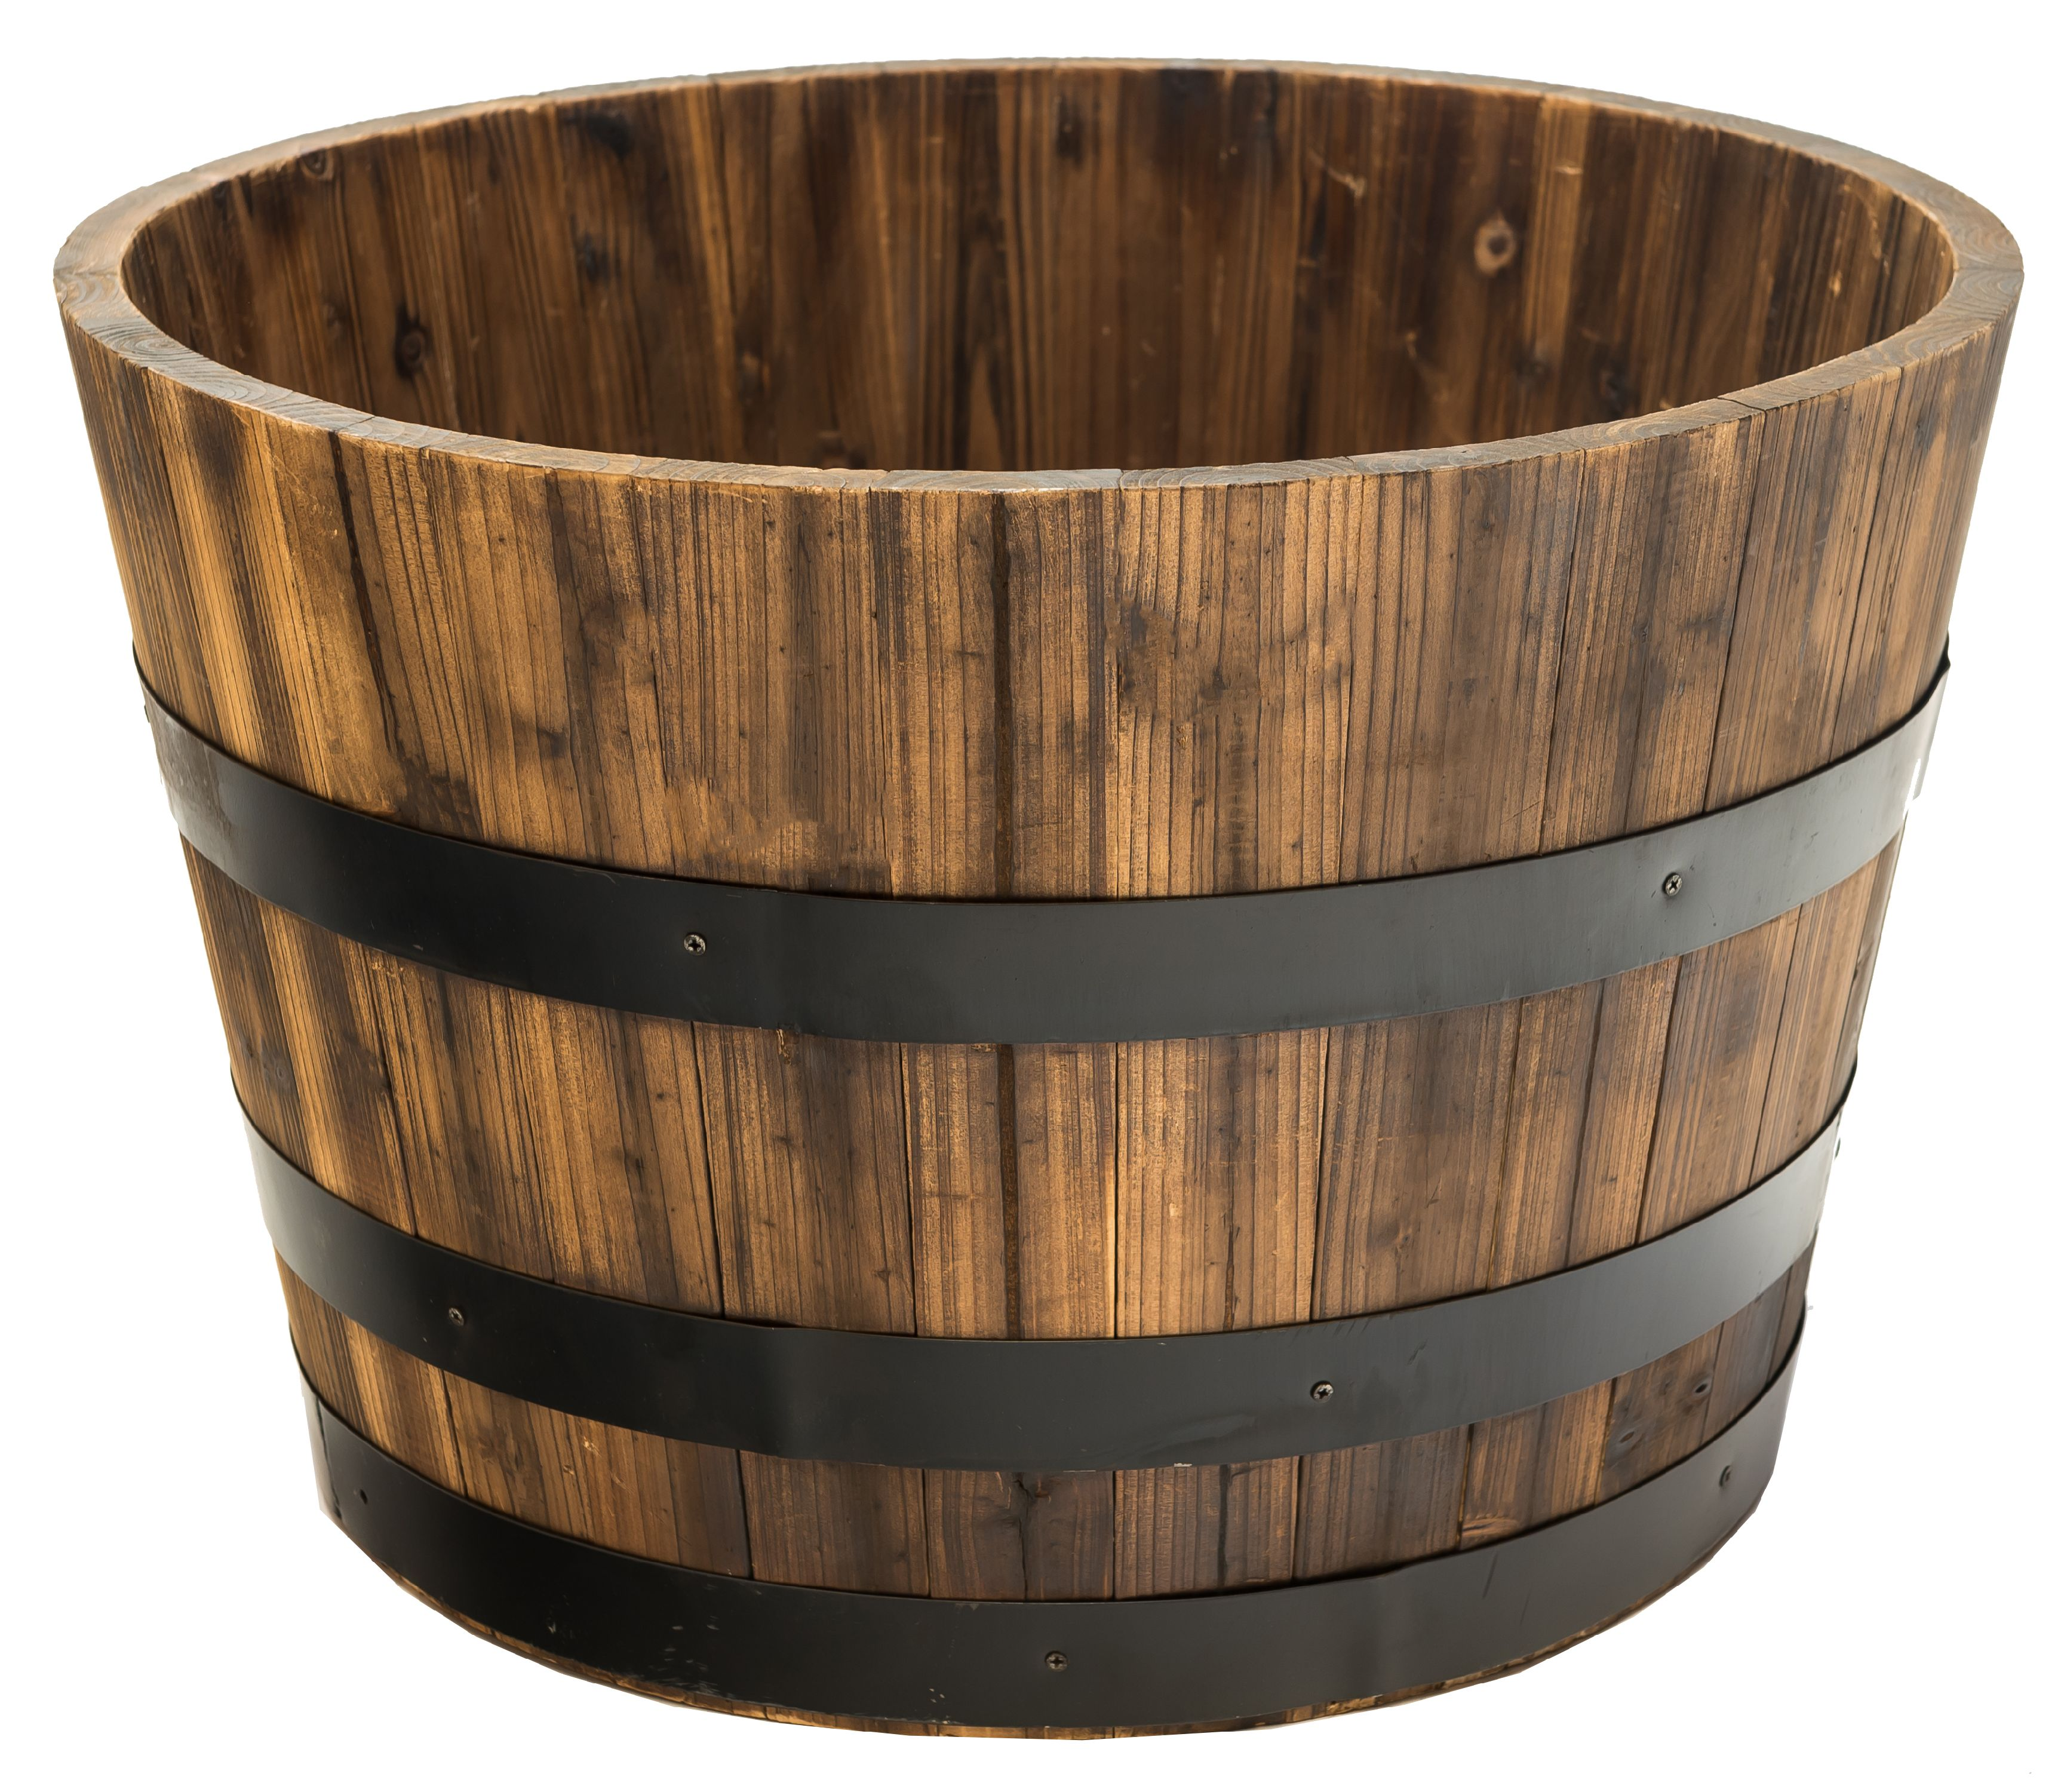 Real Wood Products Cedar Whiskey Barrel Planter